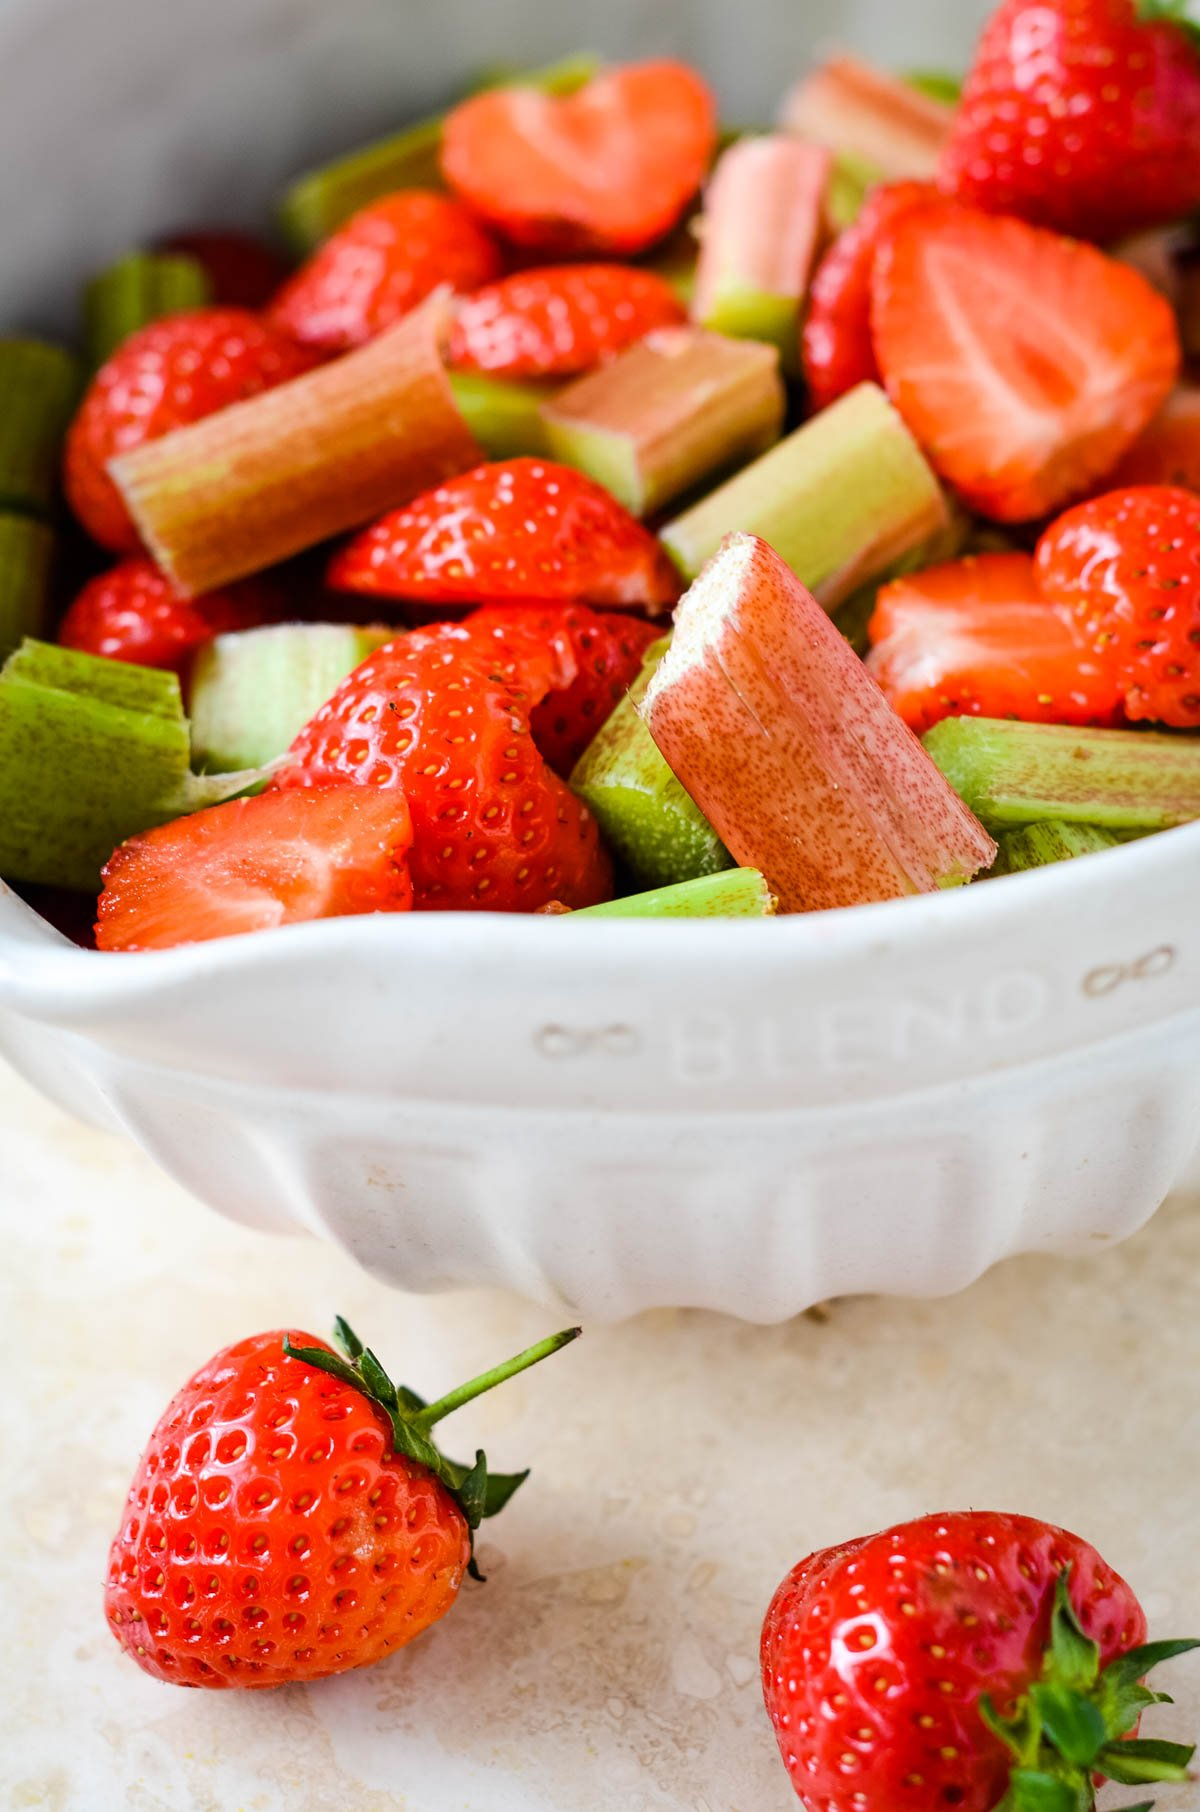 ingredients for strawberry and rhubarb jam